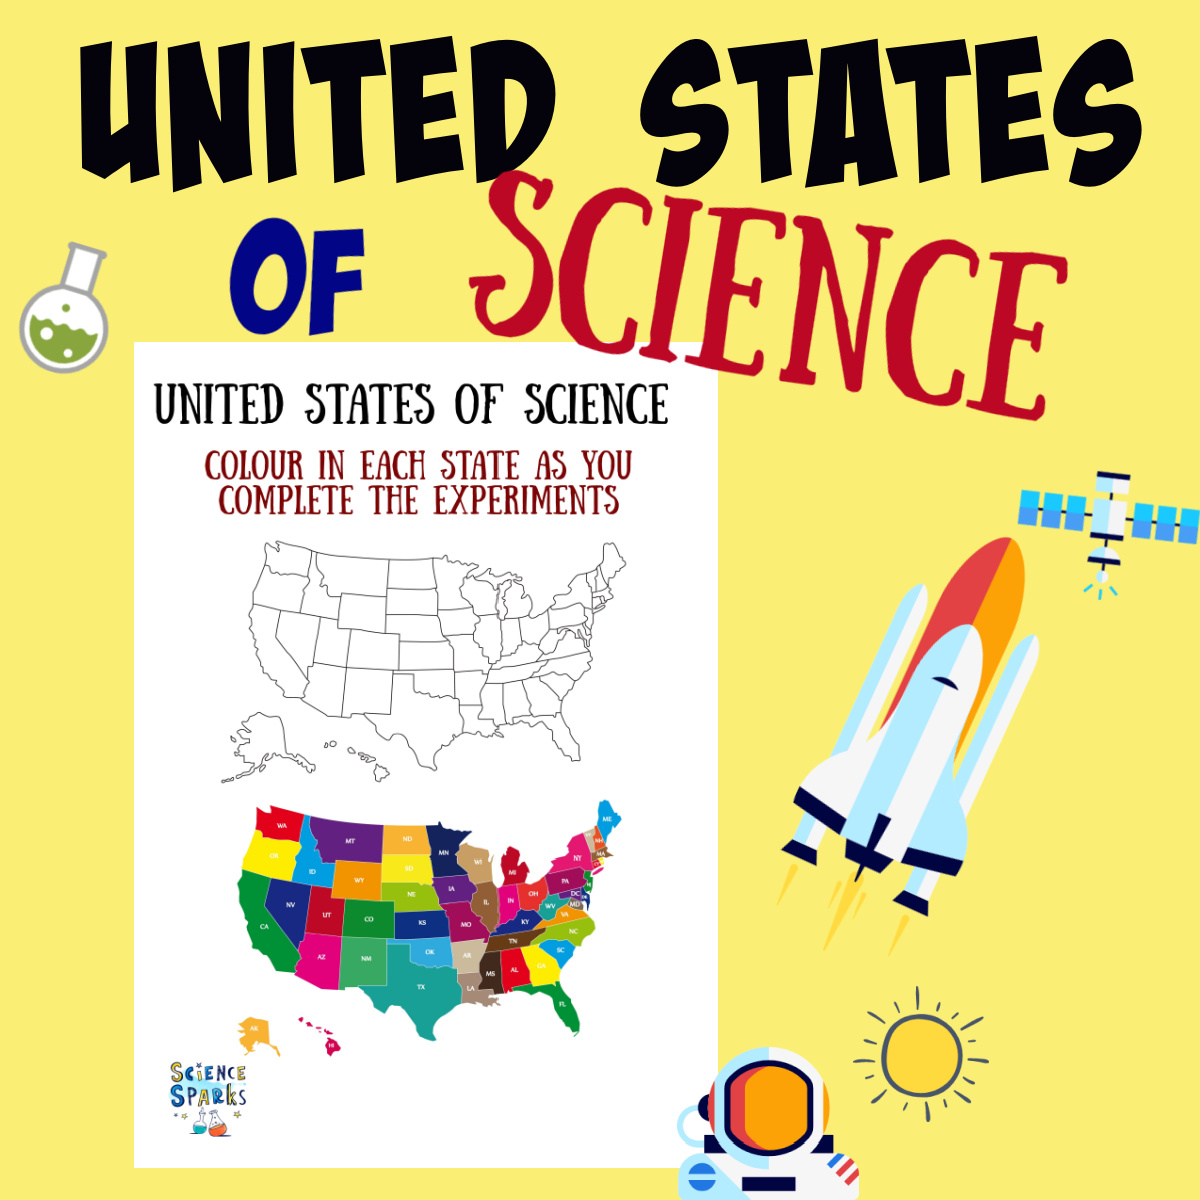 United States of Science printable checklist